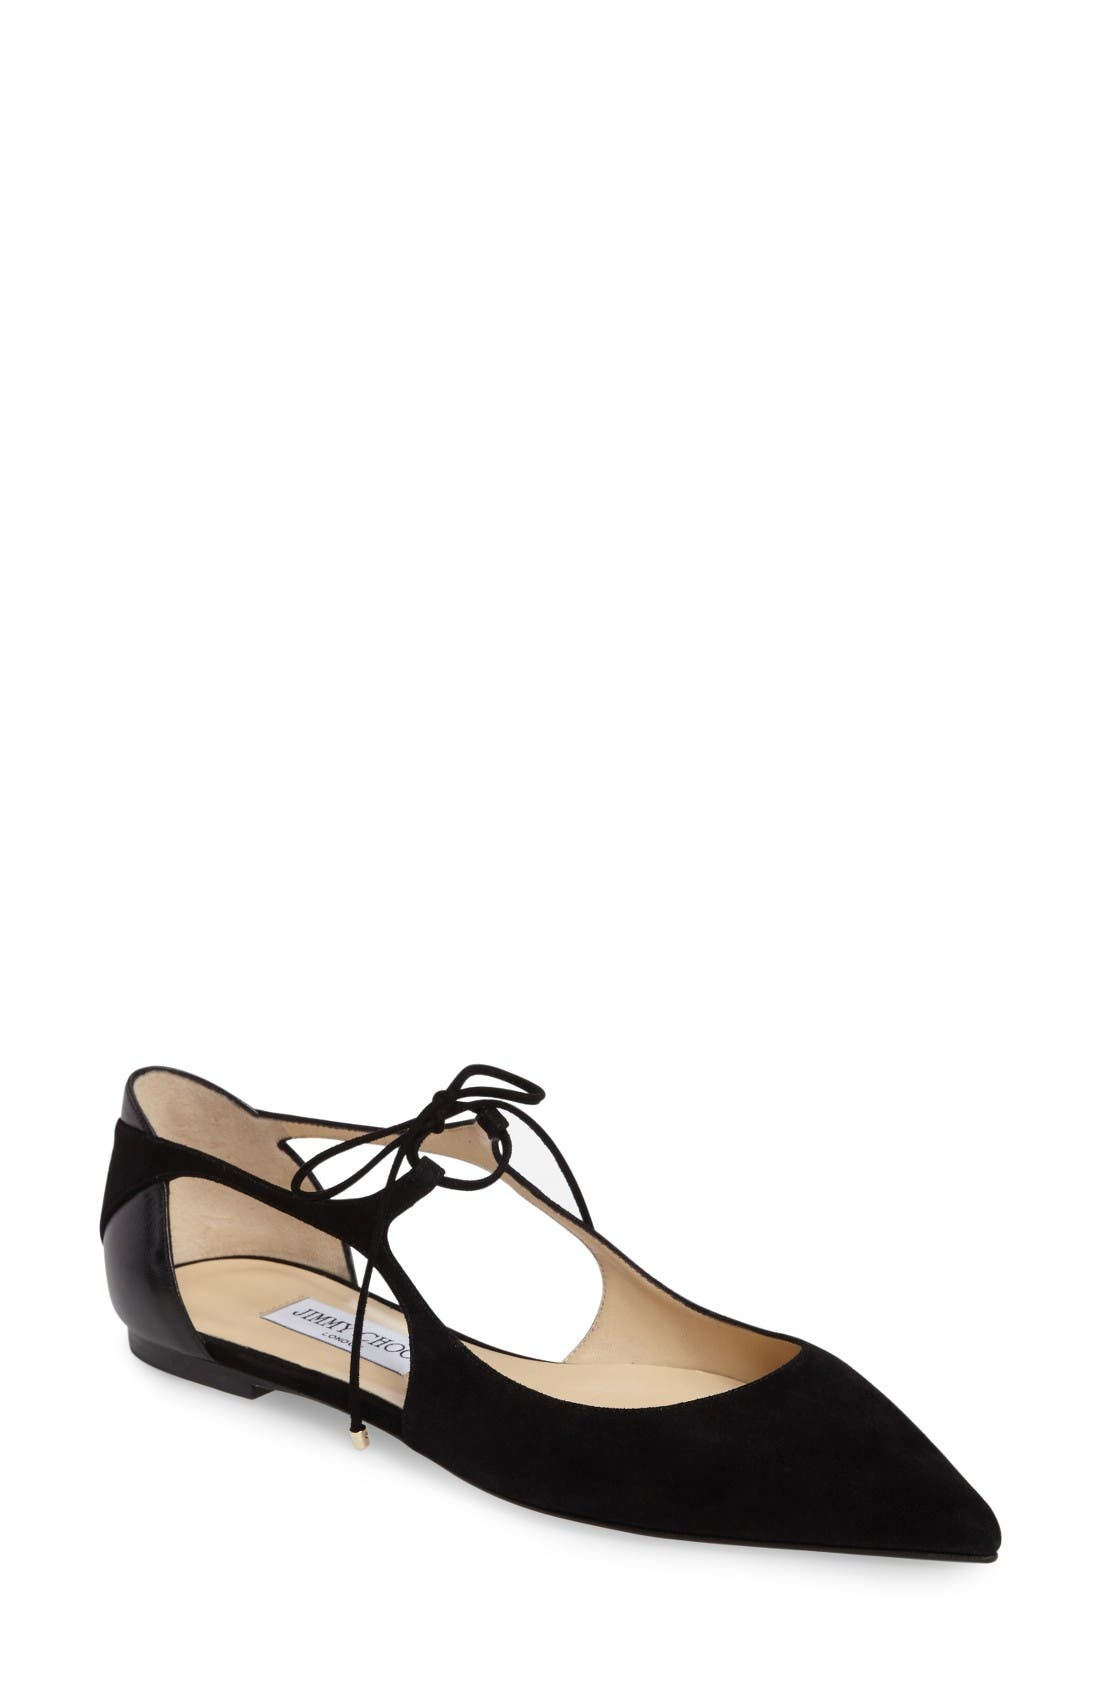 Alternate Image 1 Selected - Jimmy Choo Vanessa Lace-Up Flat (Women)